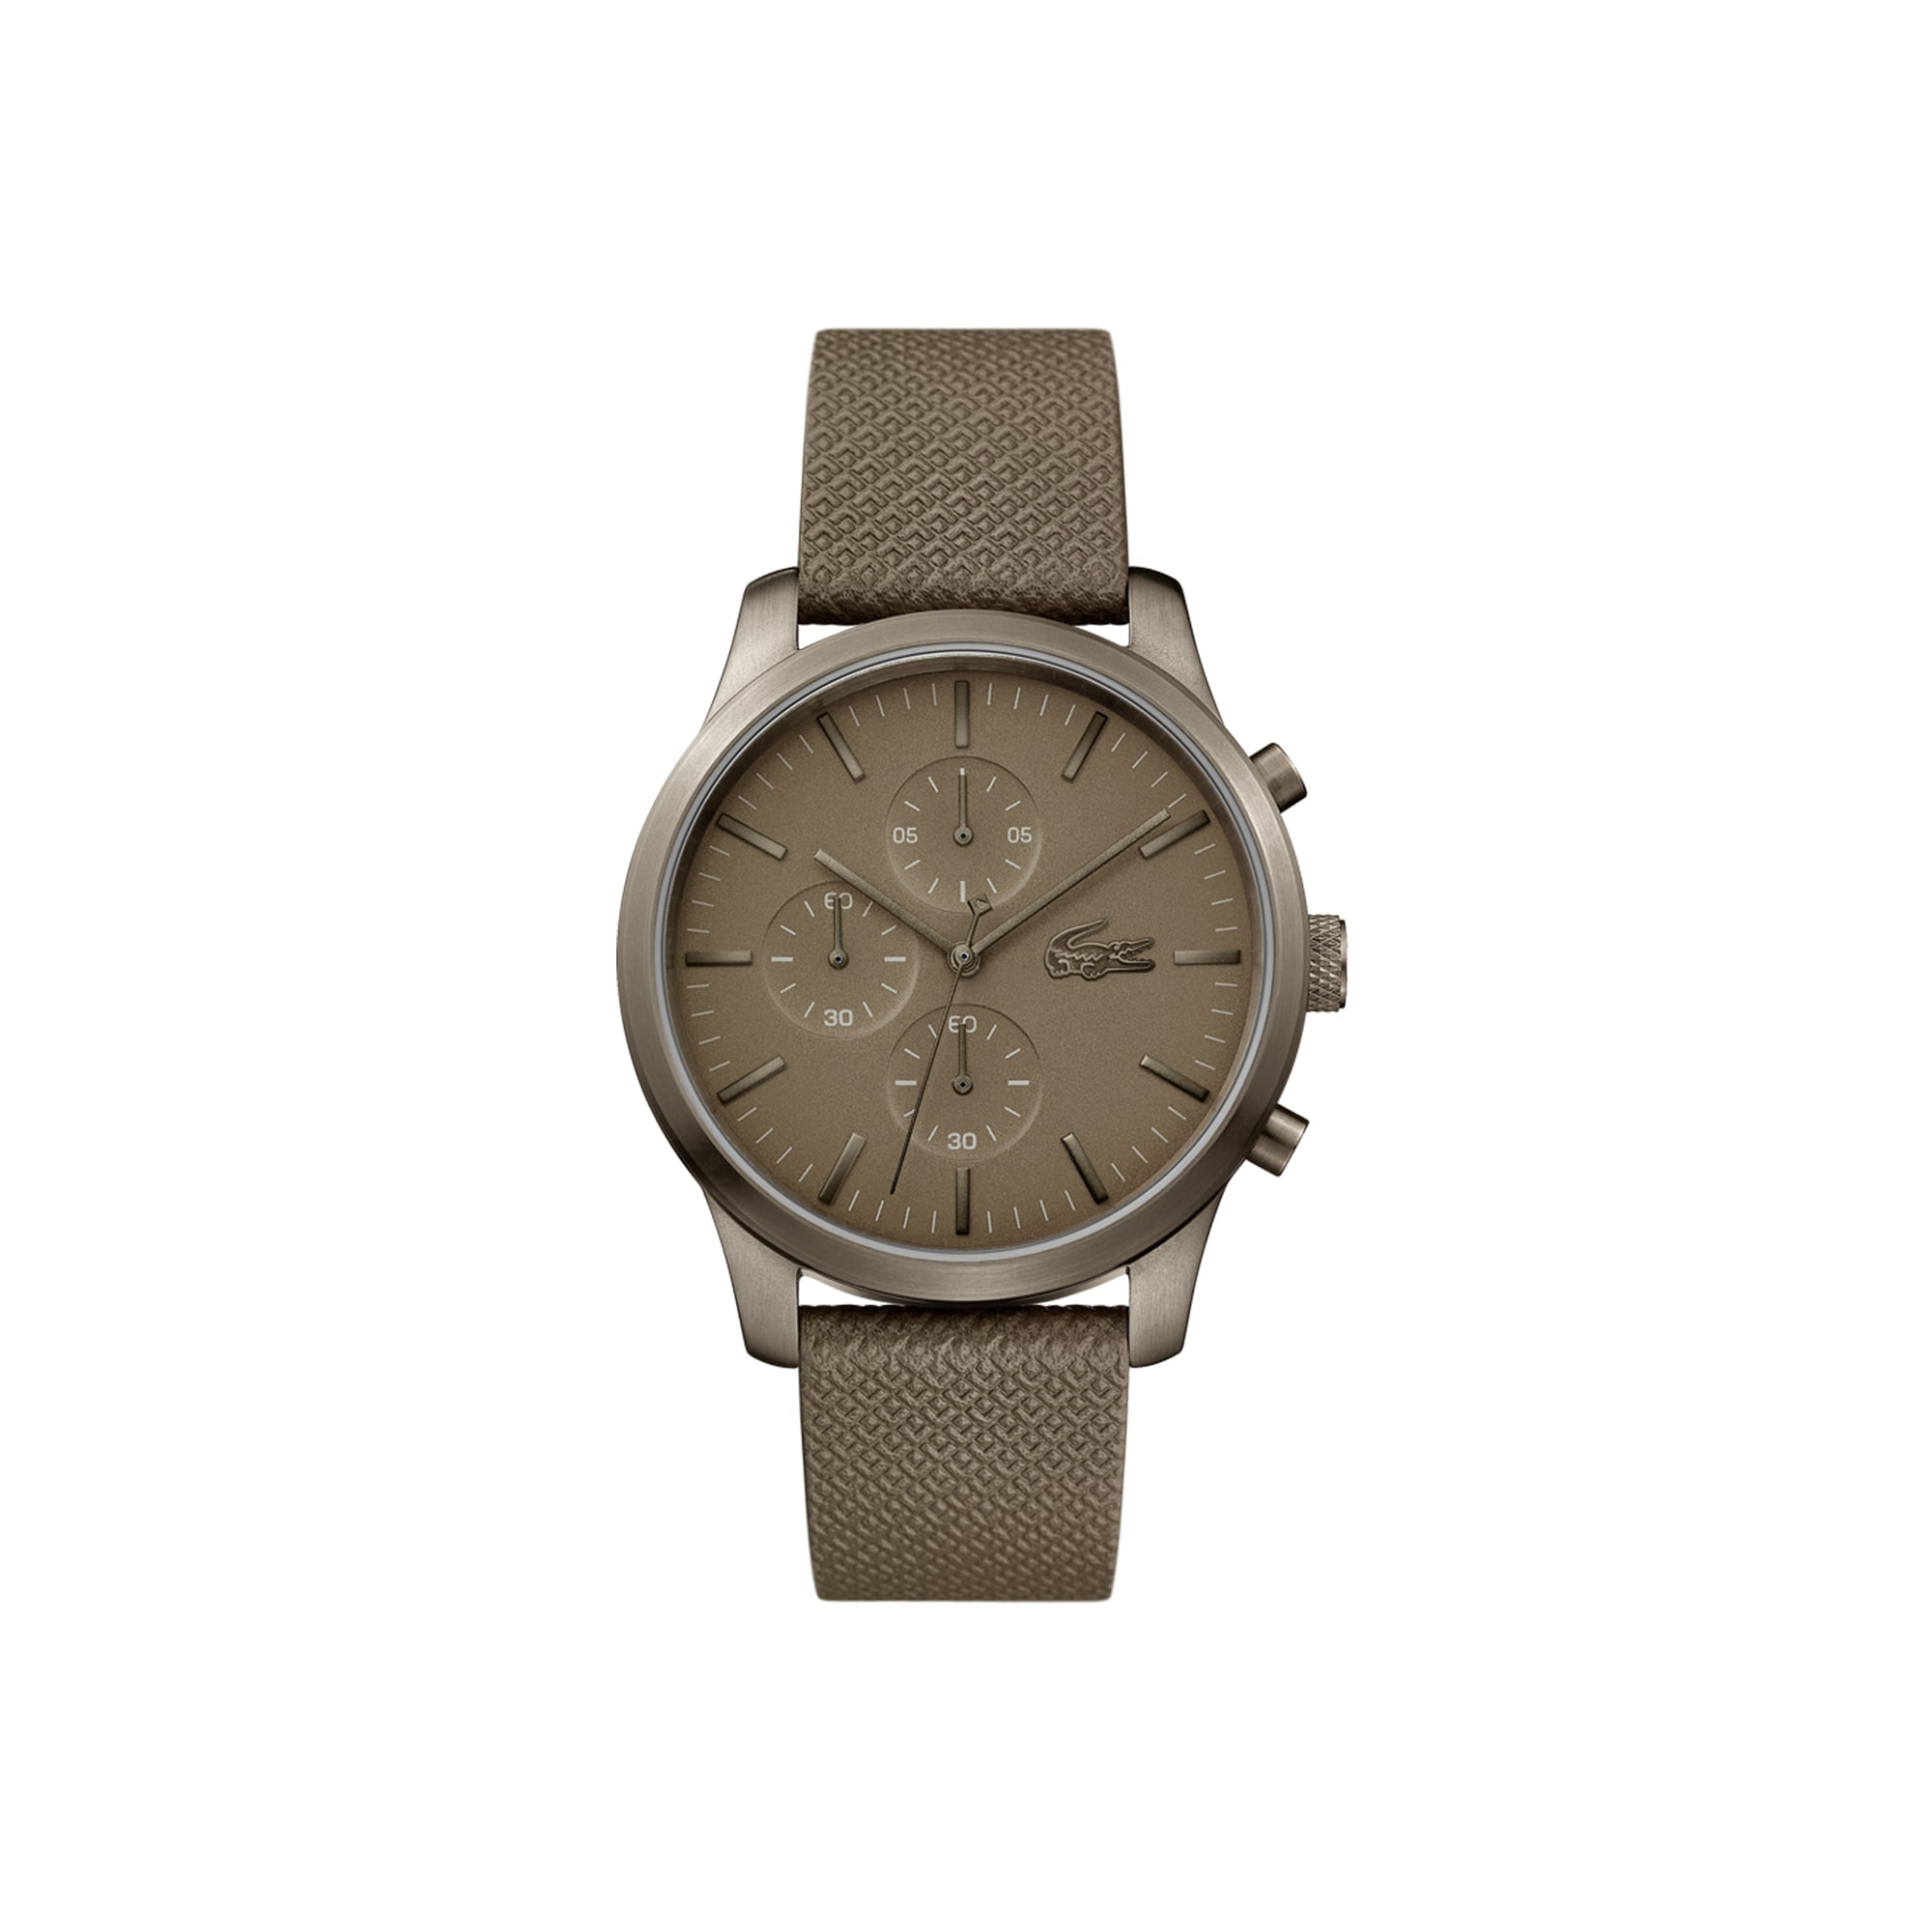 Men's Lacoste 12.12 Chronograph Watch 85th Anniversary with Khaki Petit Piqué Embossed Leather Strap